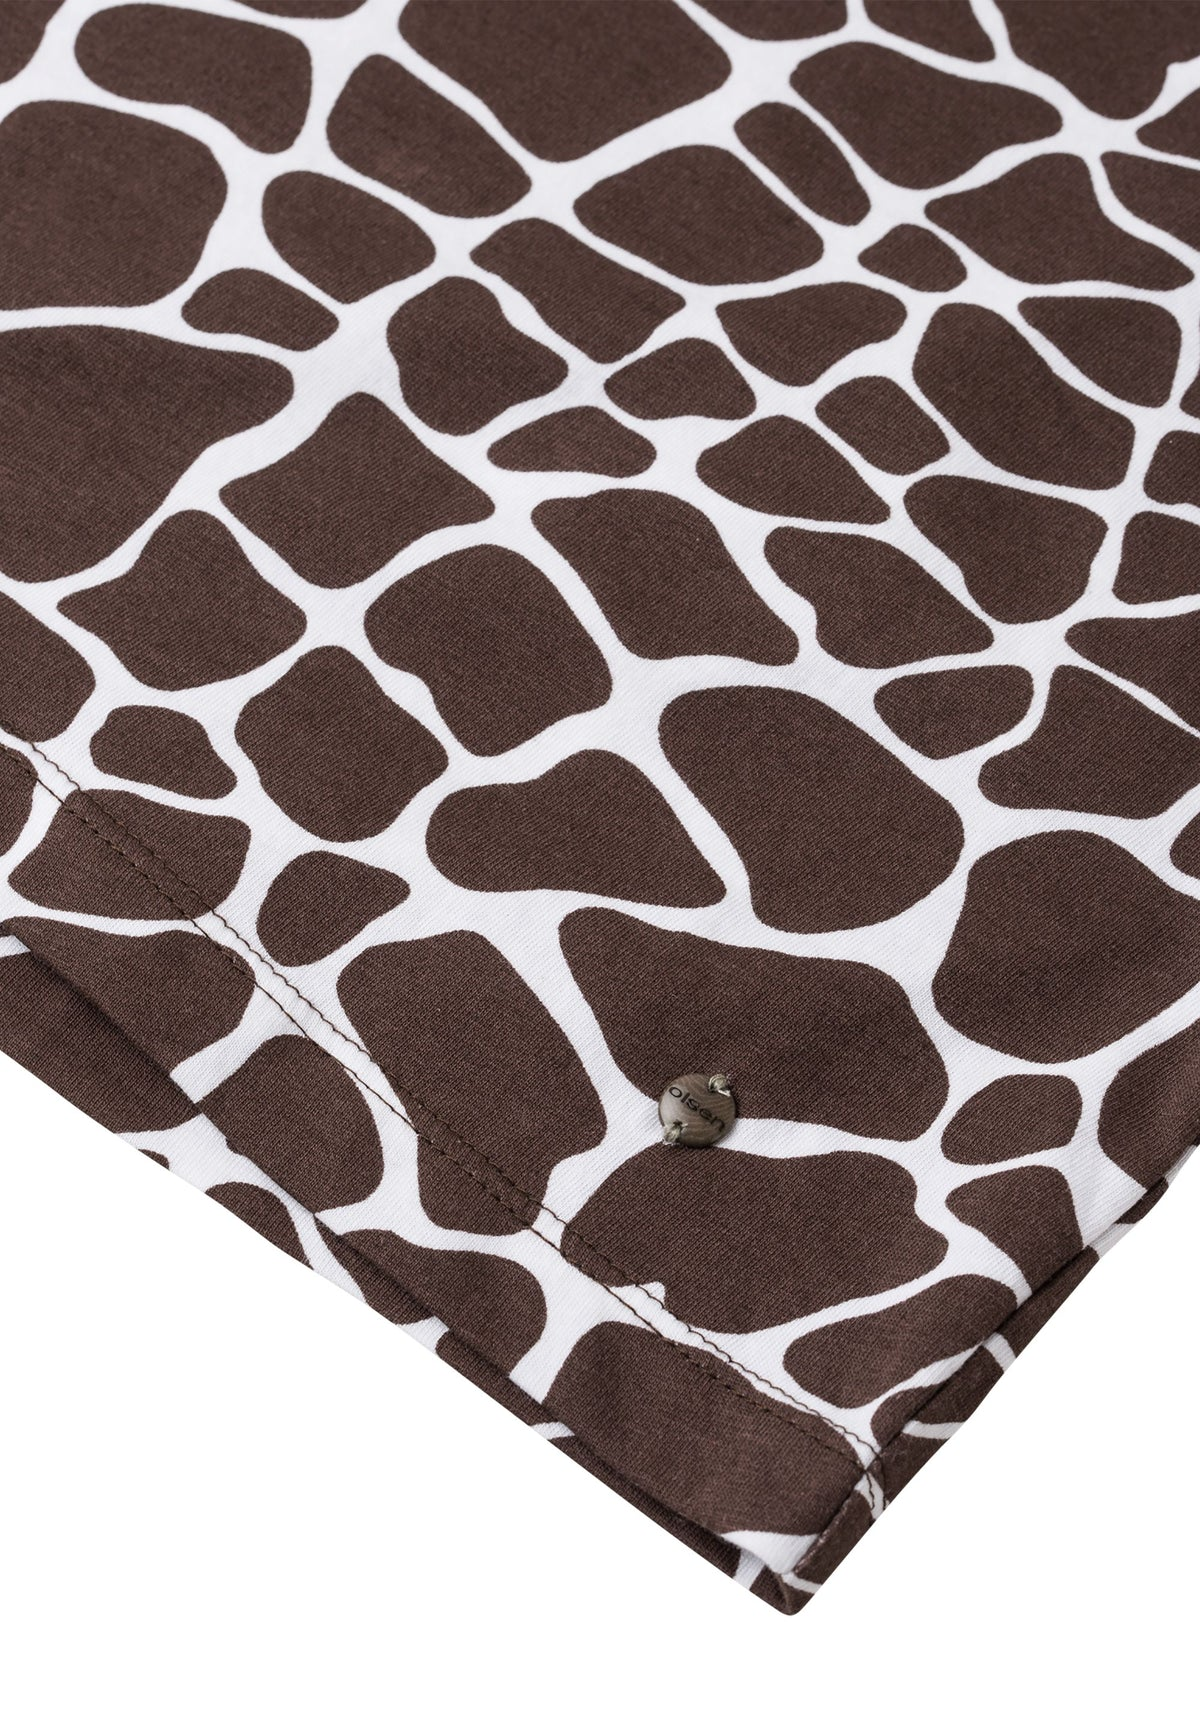 Giraffe Print 100% Cotton Short Sleeve T-Shirt